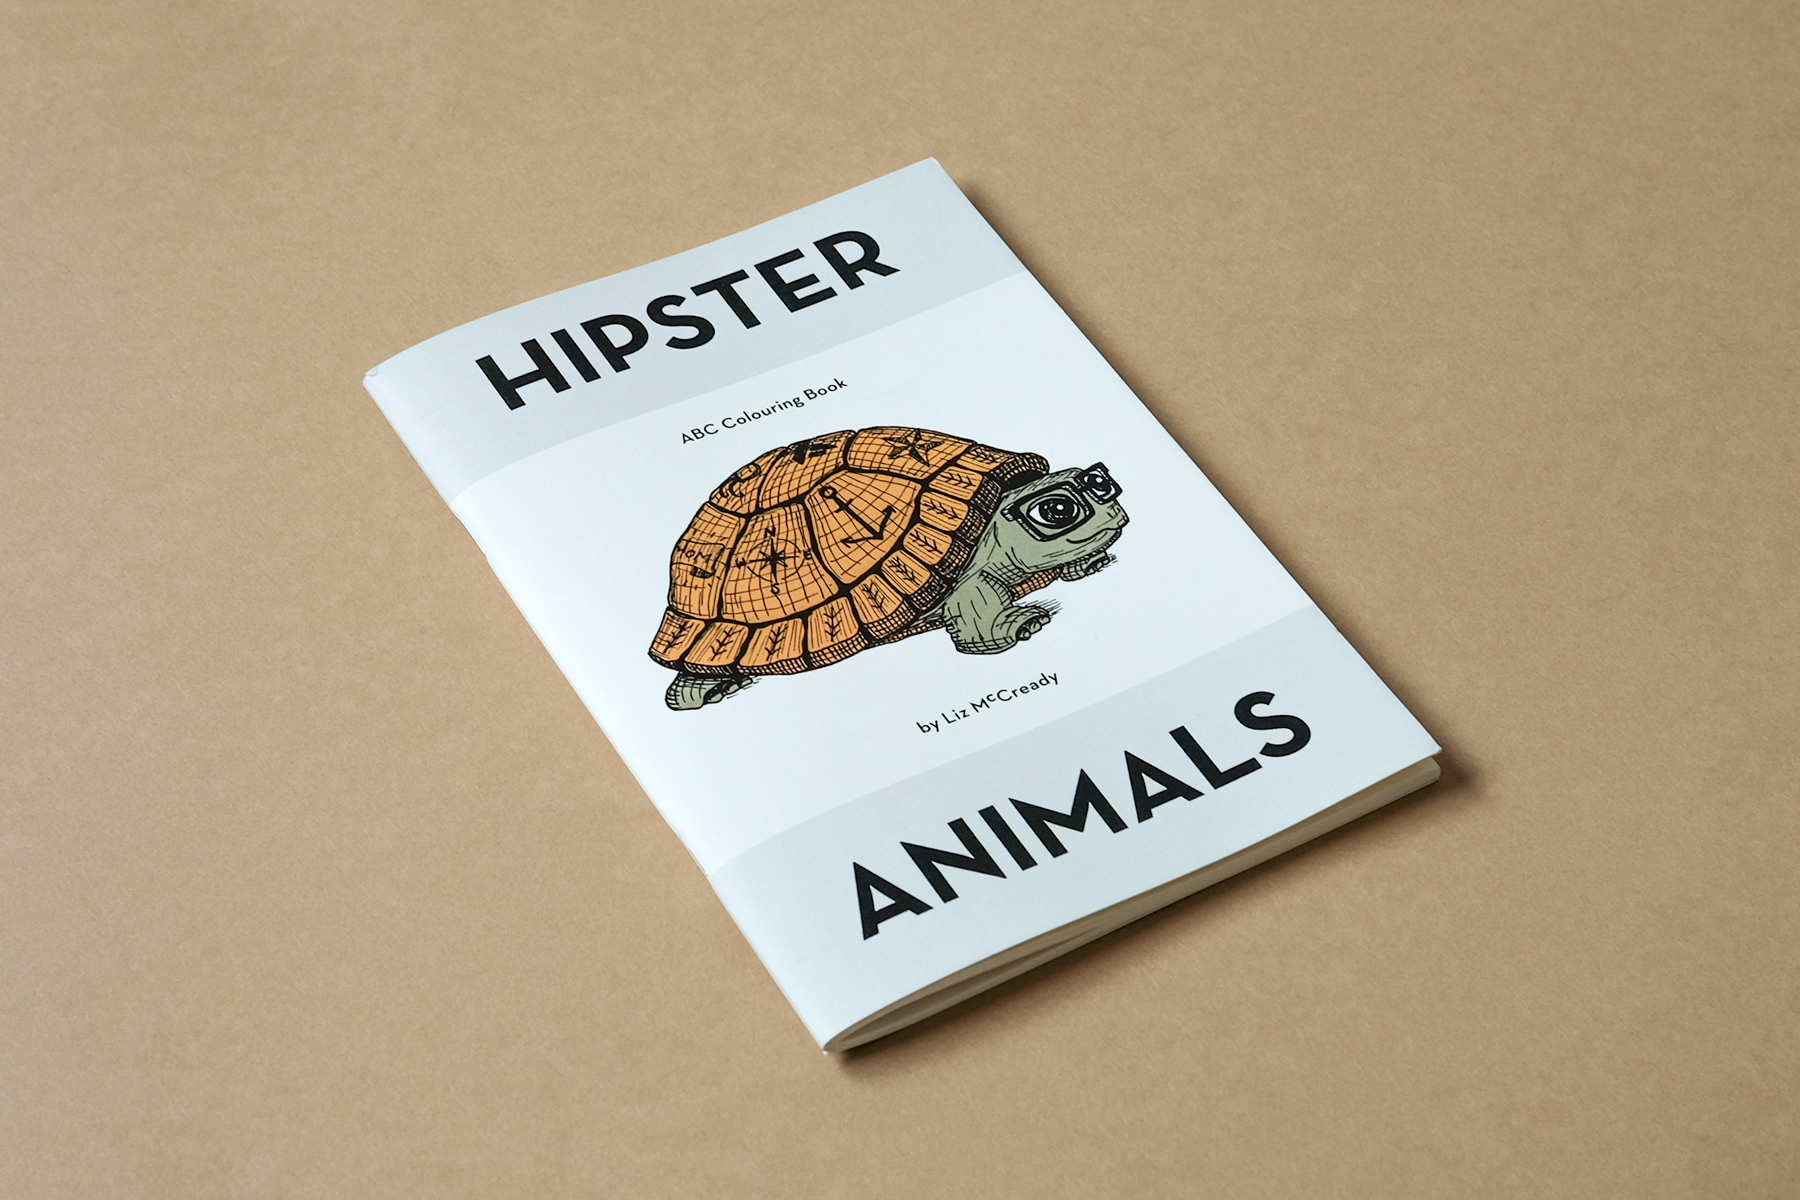 Hipster Animals An ABC Colouring Book